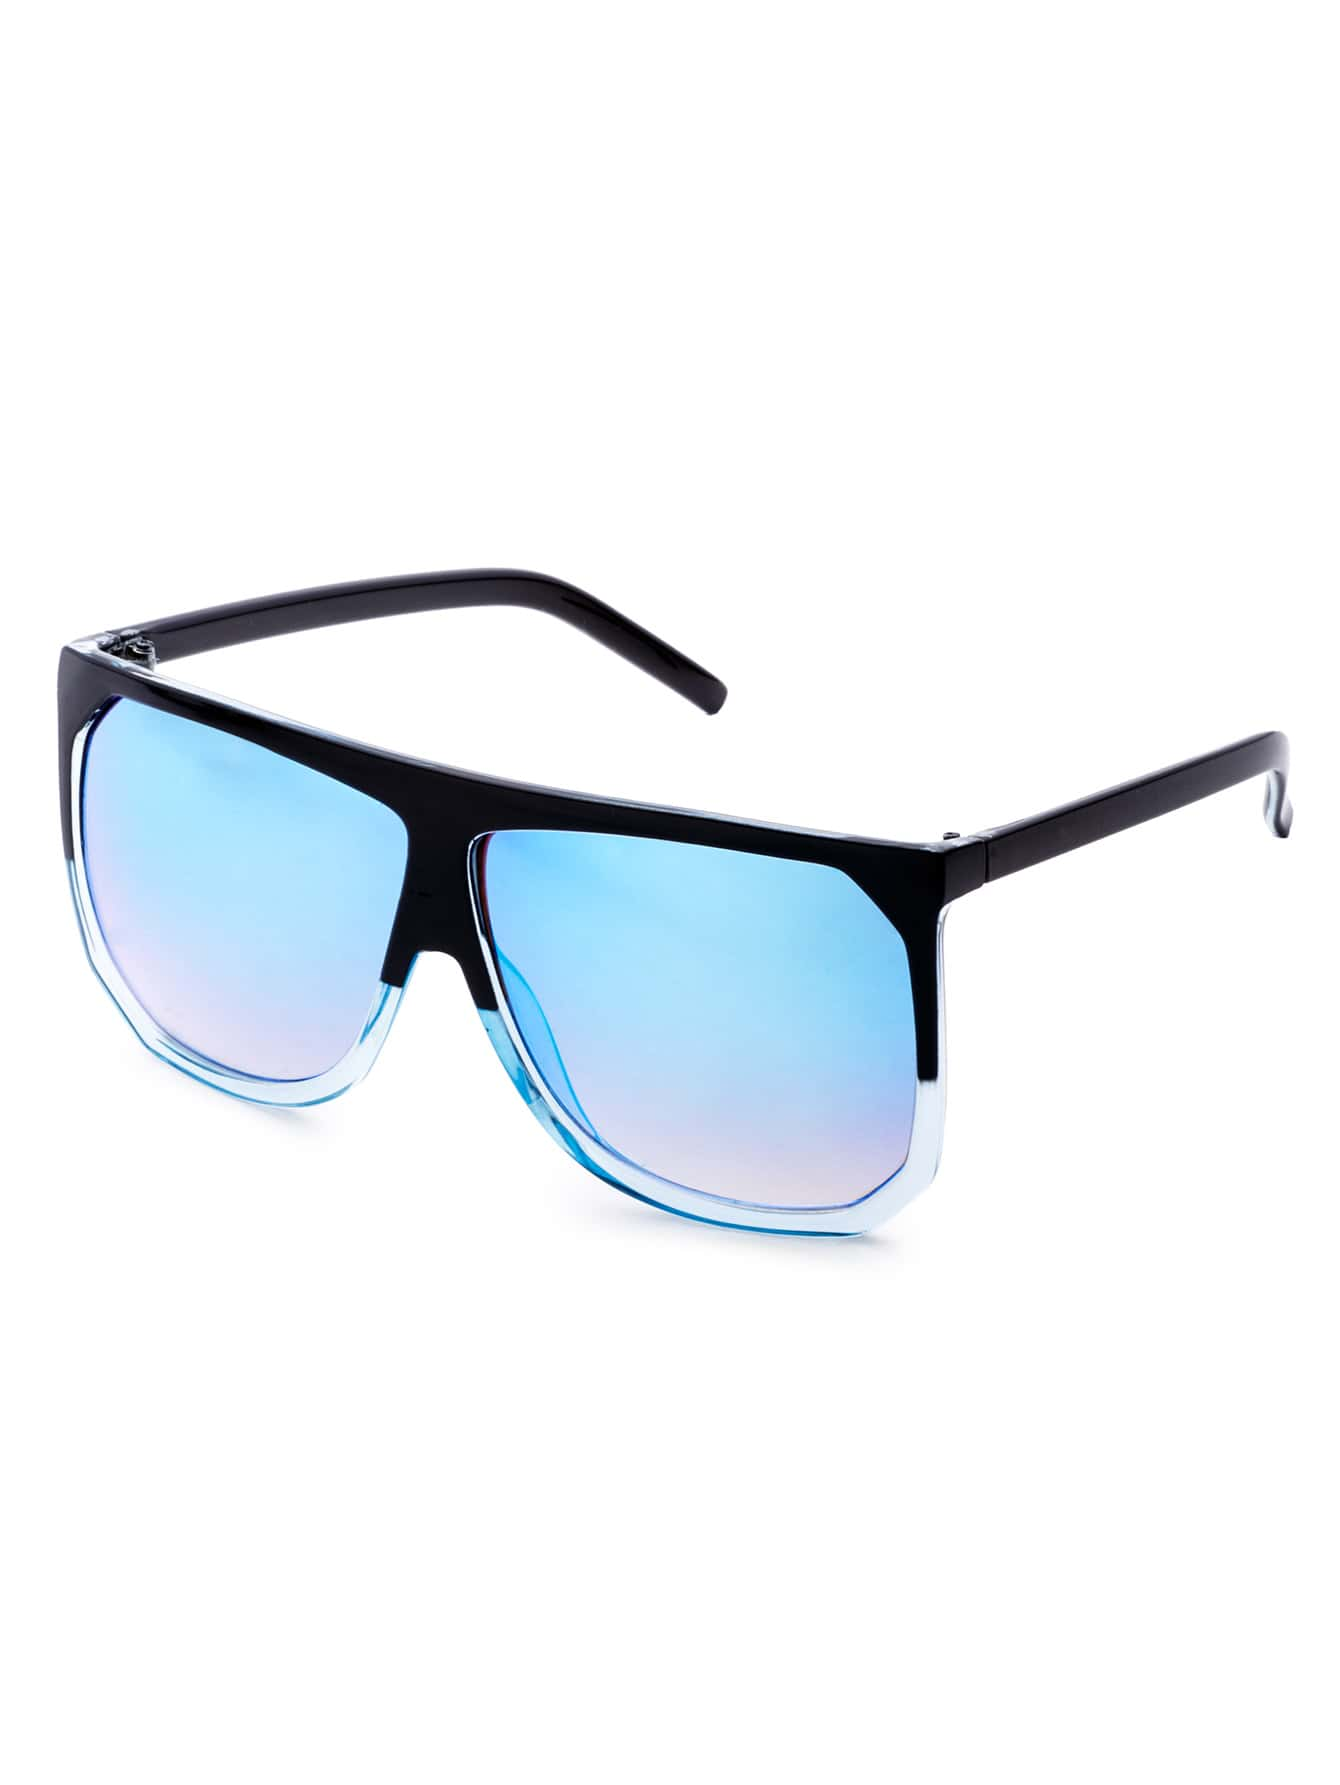 Contrast Frame Light Blue Lens Sunglasses sunglass161220303